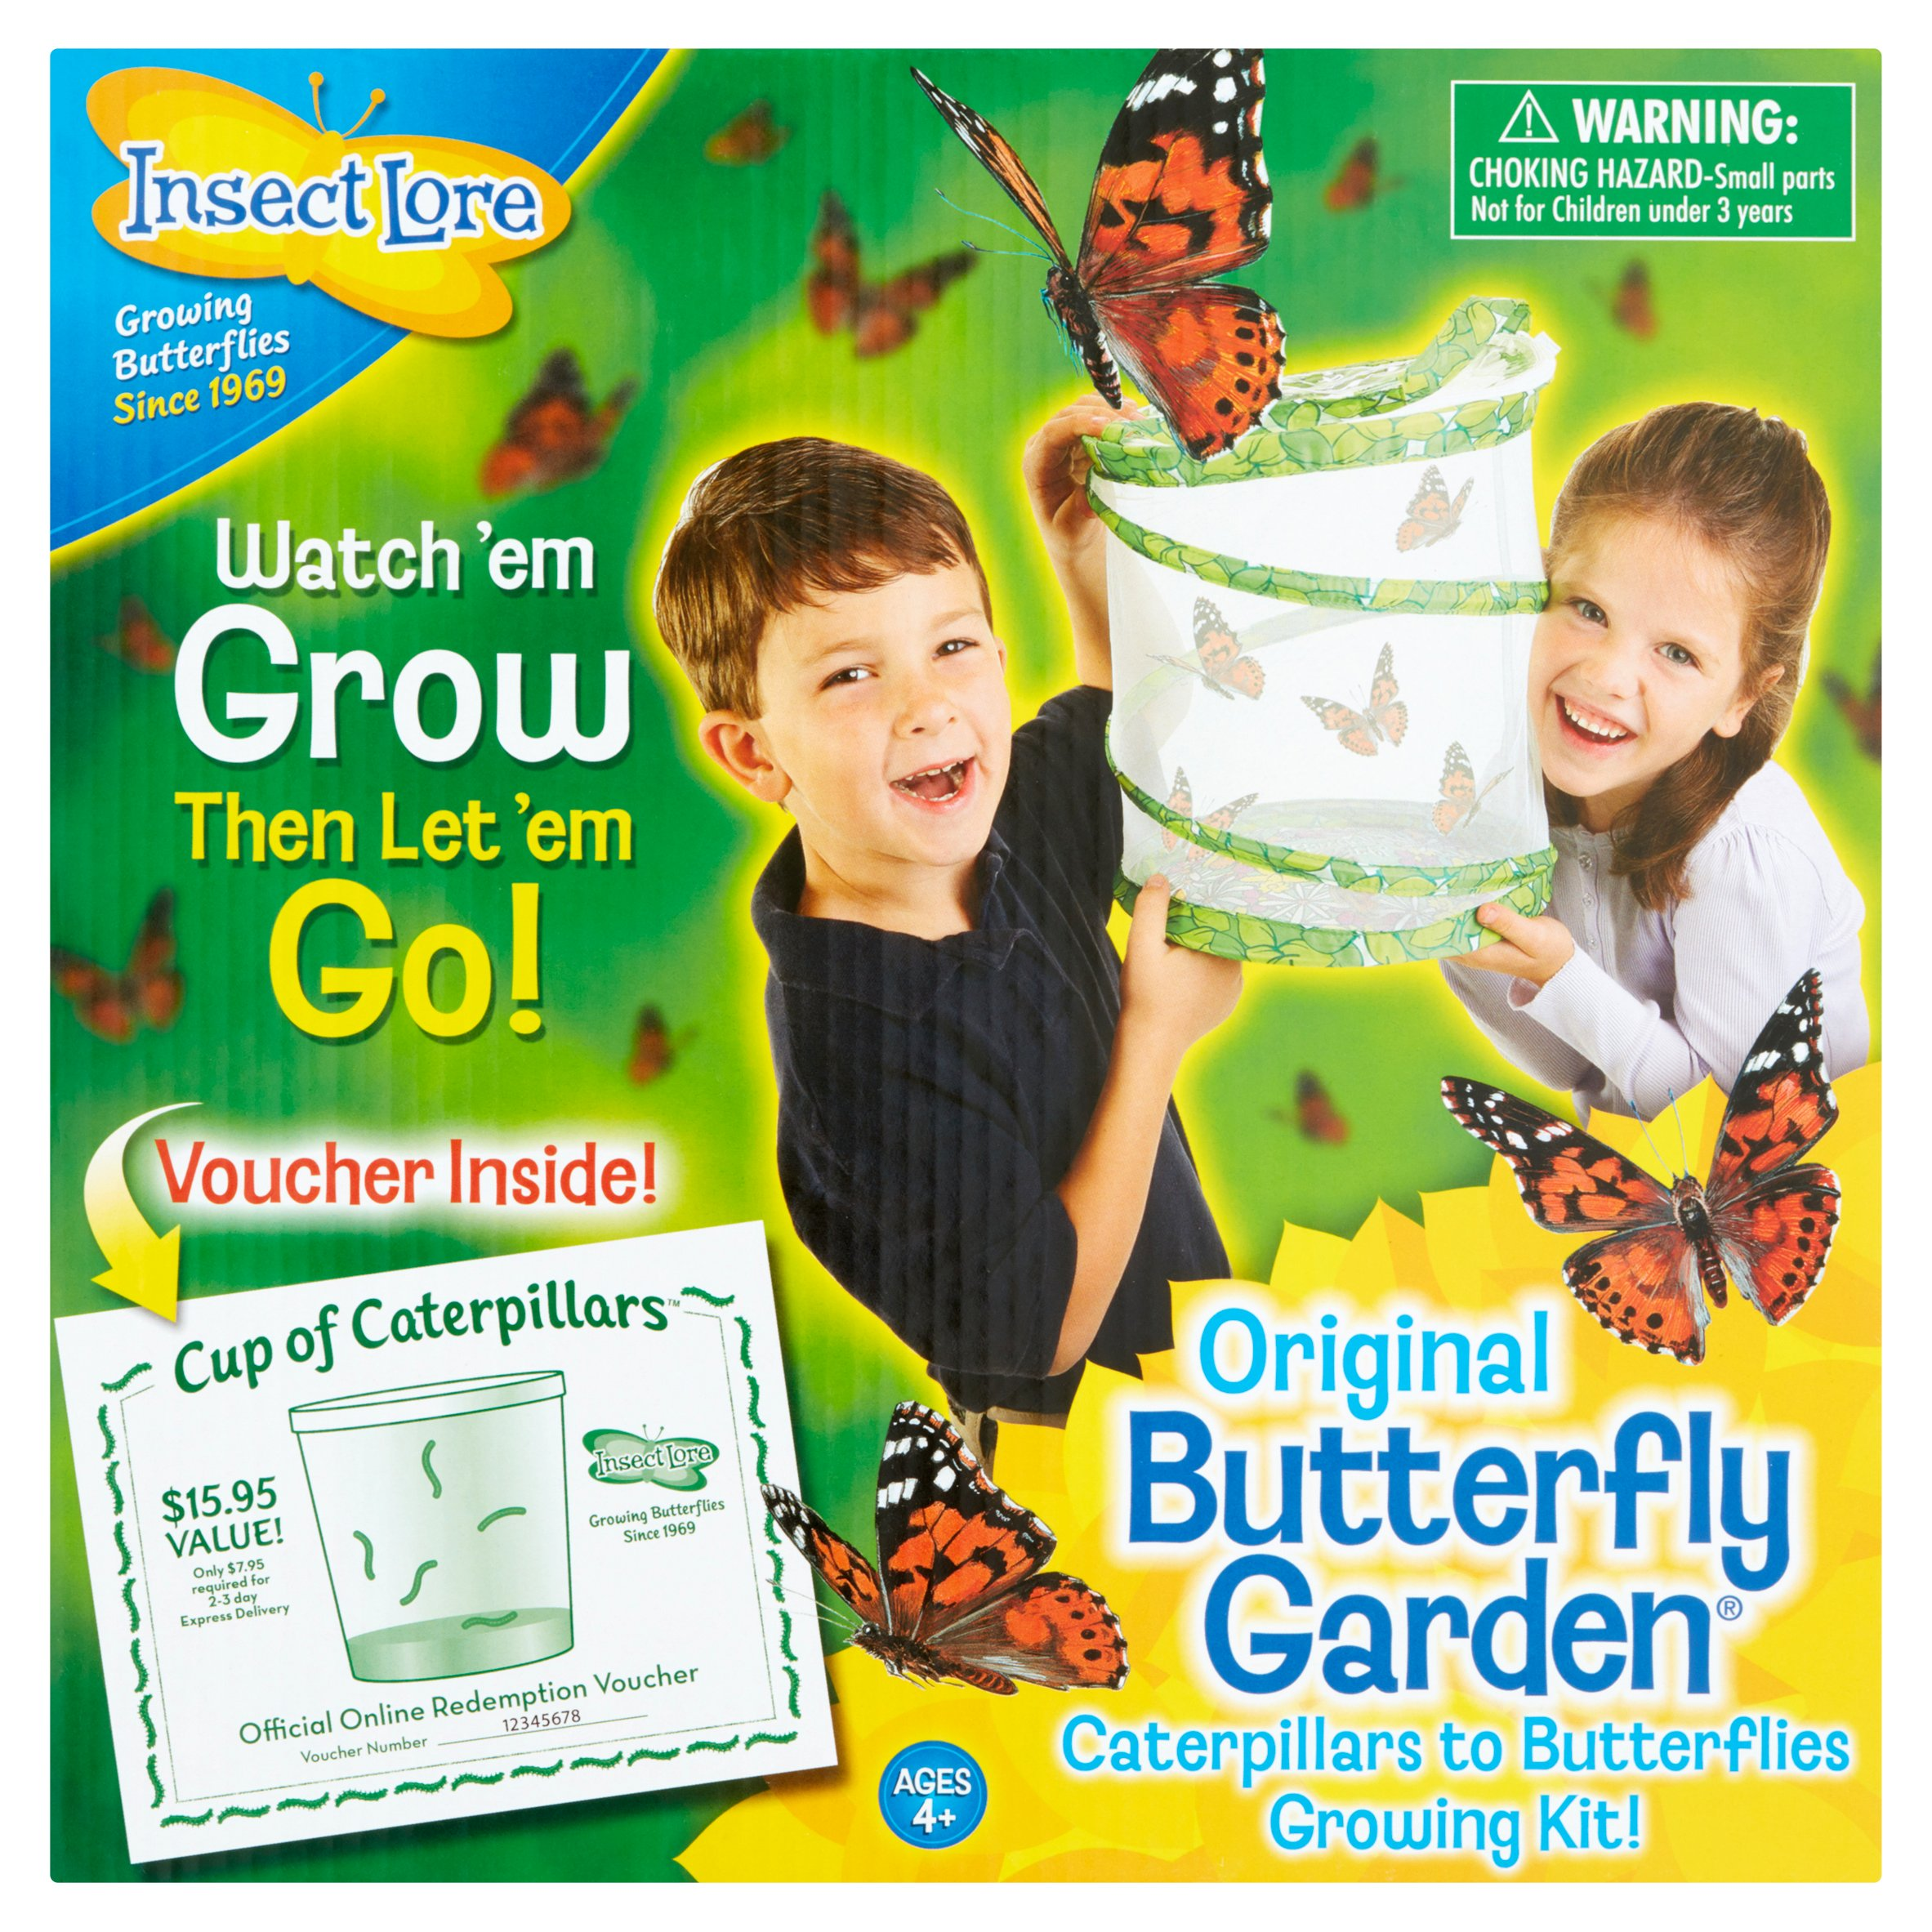 Insect Lore Original Butterfly Garden Caterpillars To Butterflies